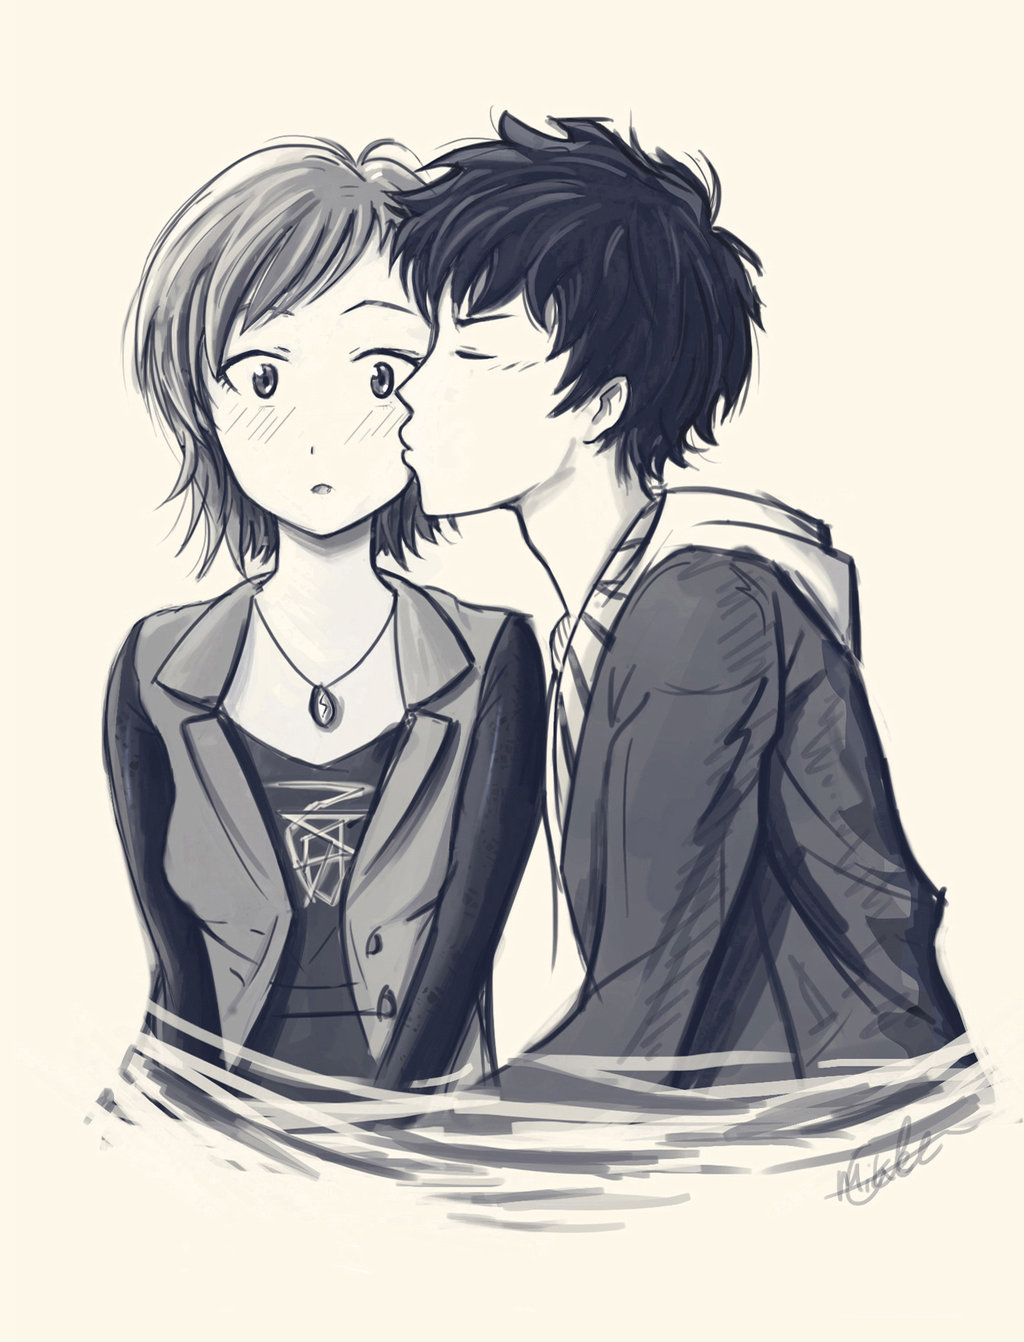 Some Inappropriate Things - A Kiss